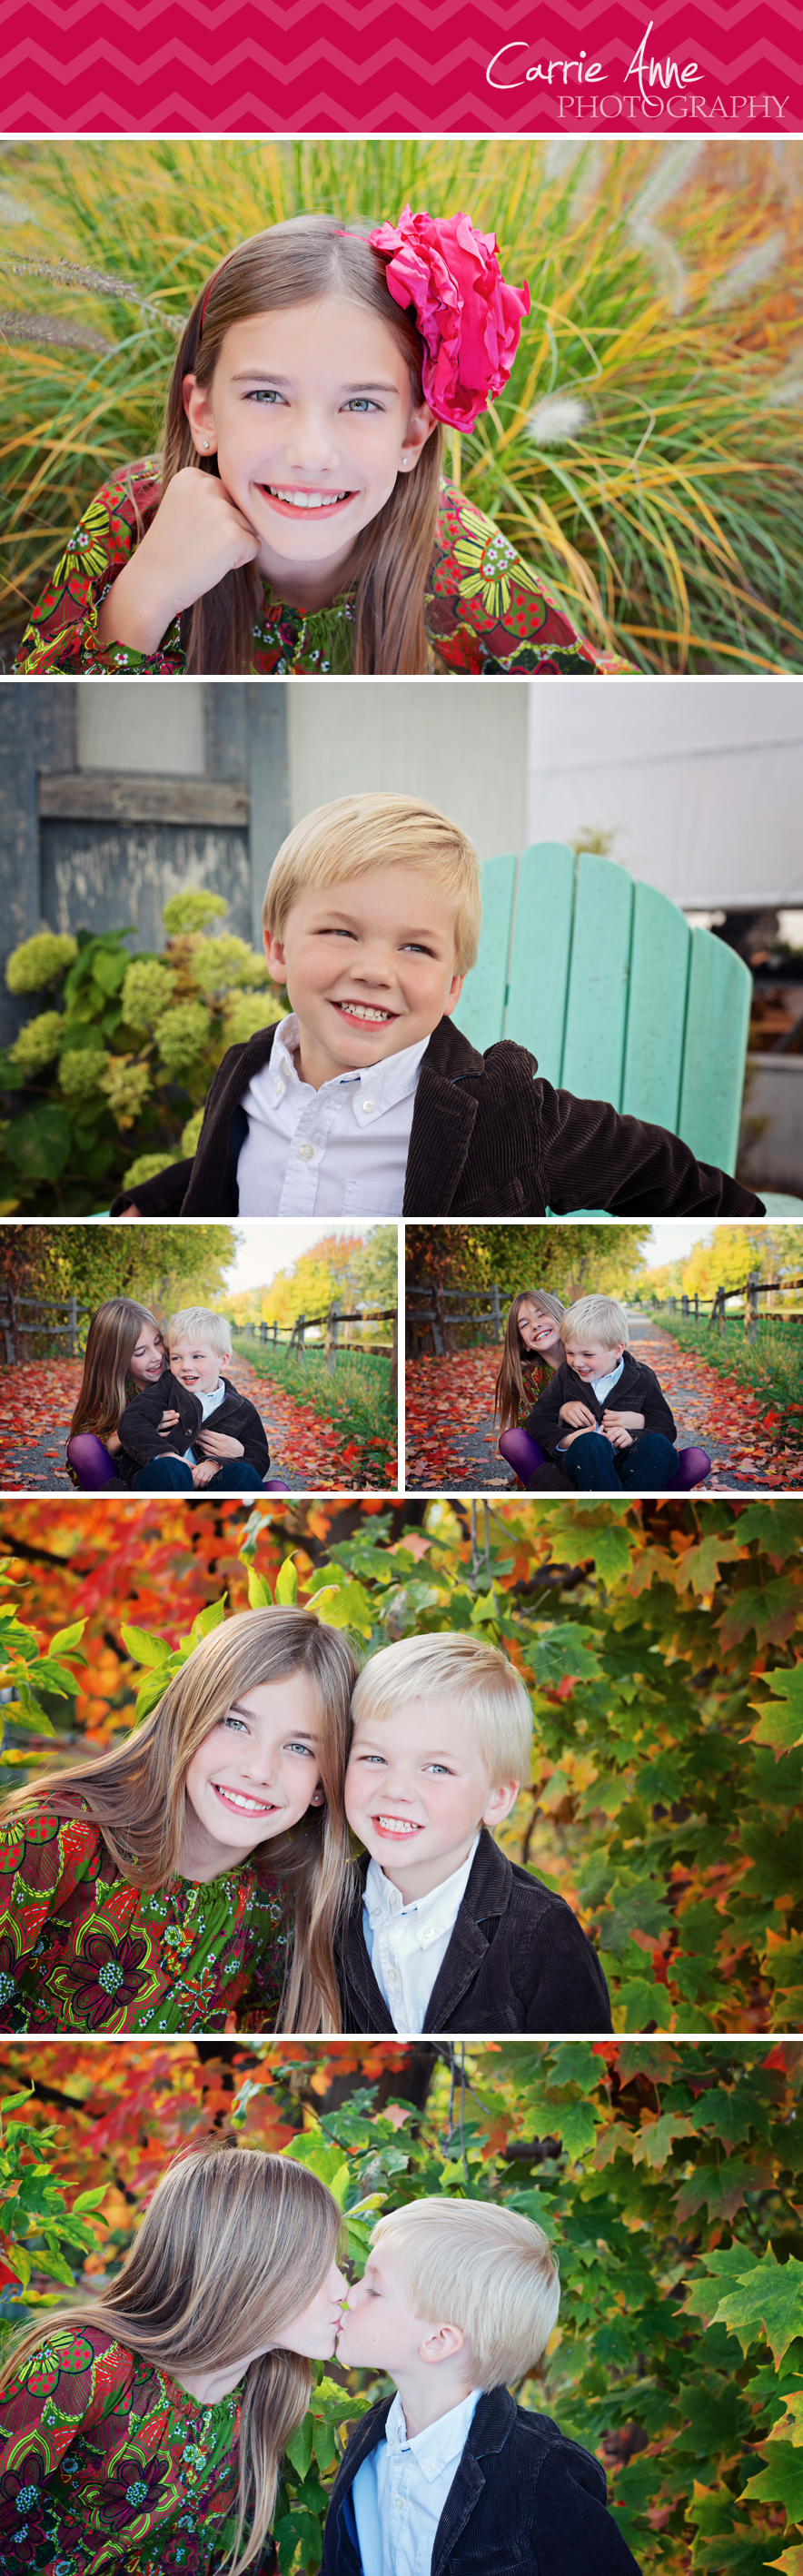 Unique and colorful family photography by Carrie Anne Photography